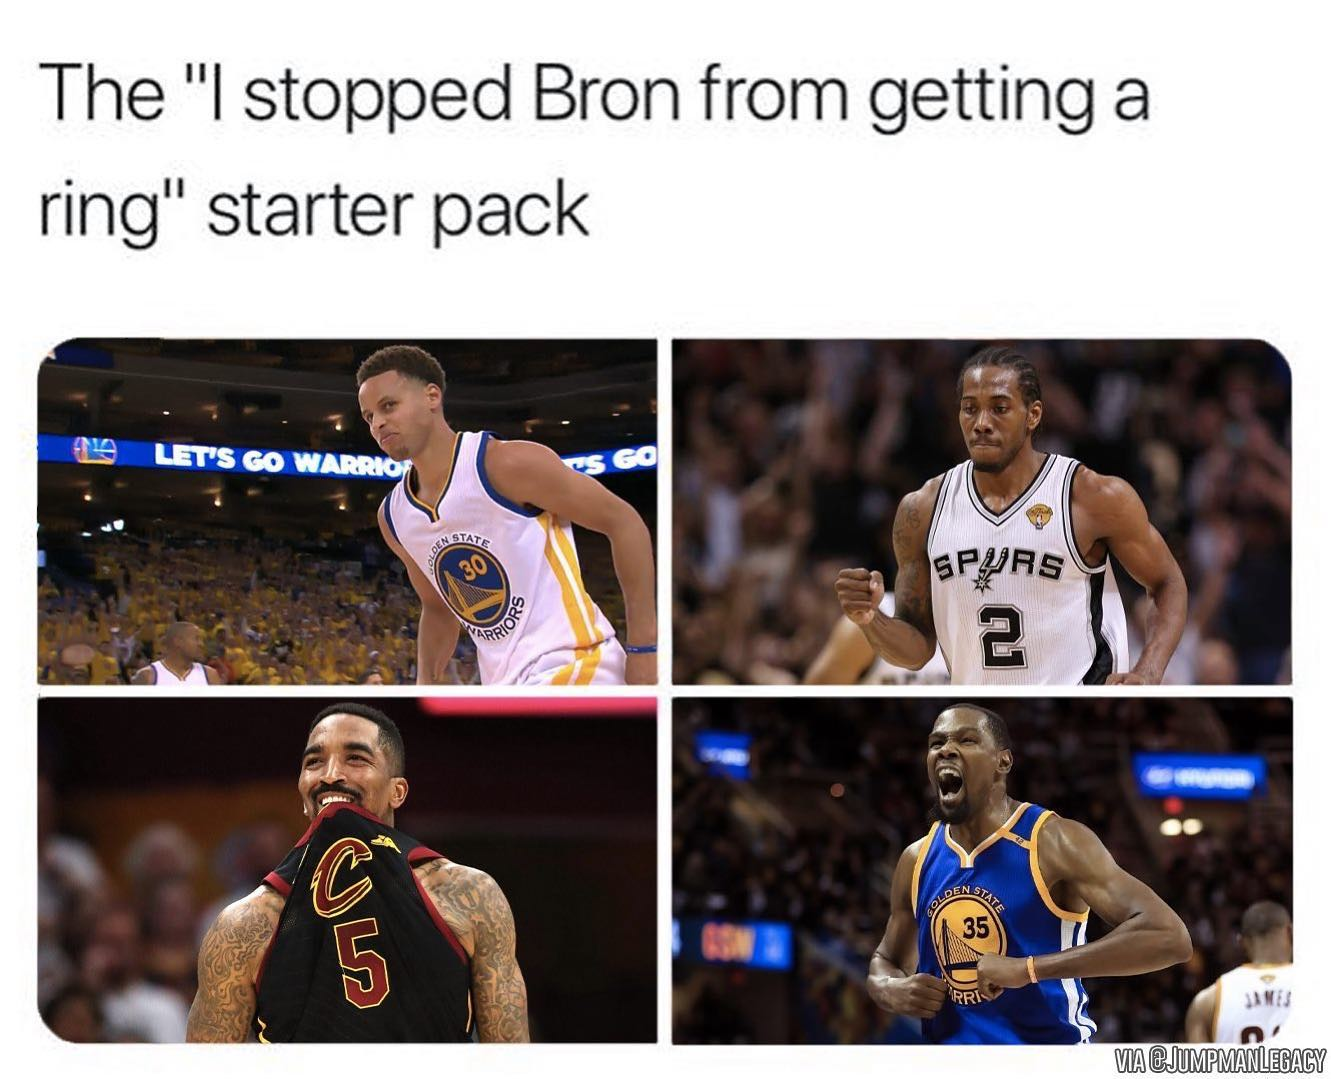 All of these players stopped LeBron from a Championship 😂 — #nba #nbamemes #memes #bball #hoops #basketball #nbafinals #ring #lebronjames #jrsmith #stephcurry #kawhileonard #kevindurant #cavs #warriors #spurs